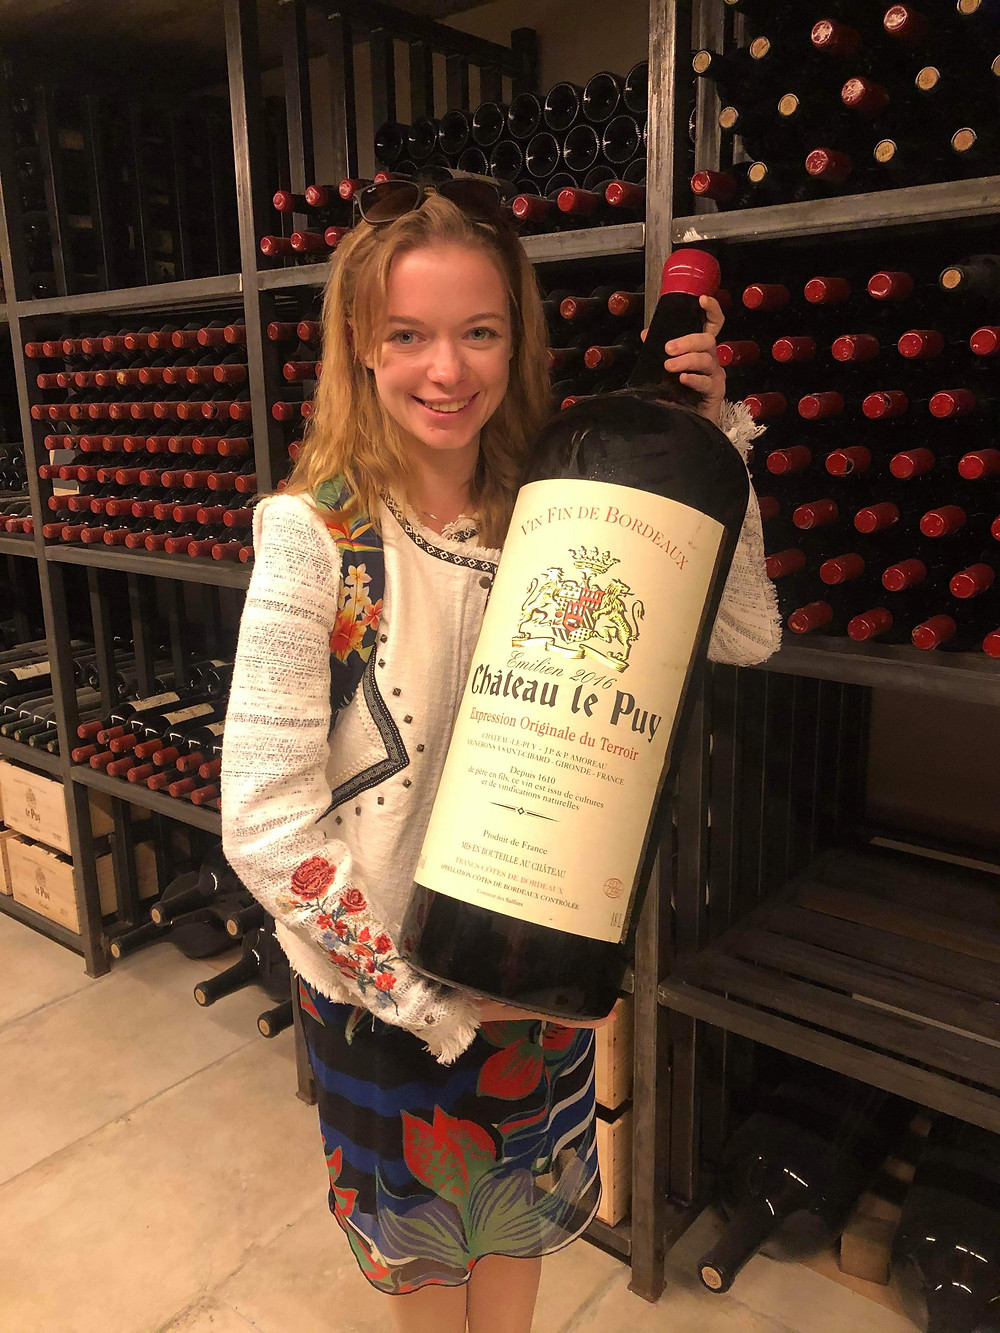 with a huge bottle in hands in the wine library of Chateau Le Puy